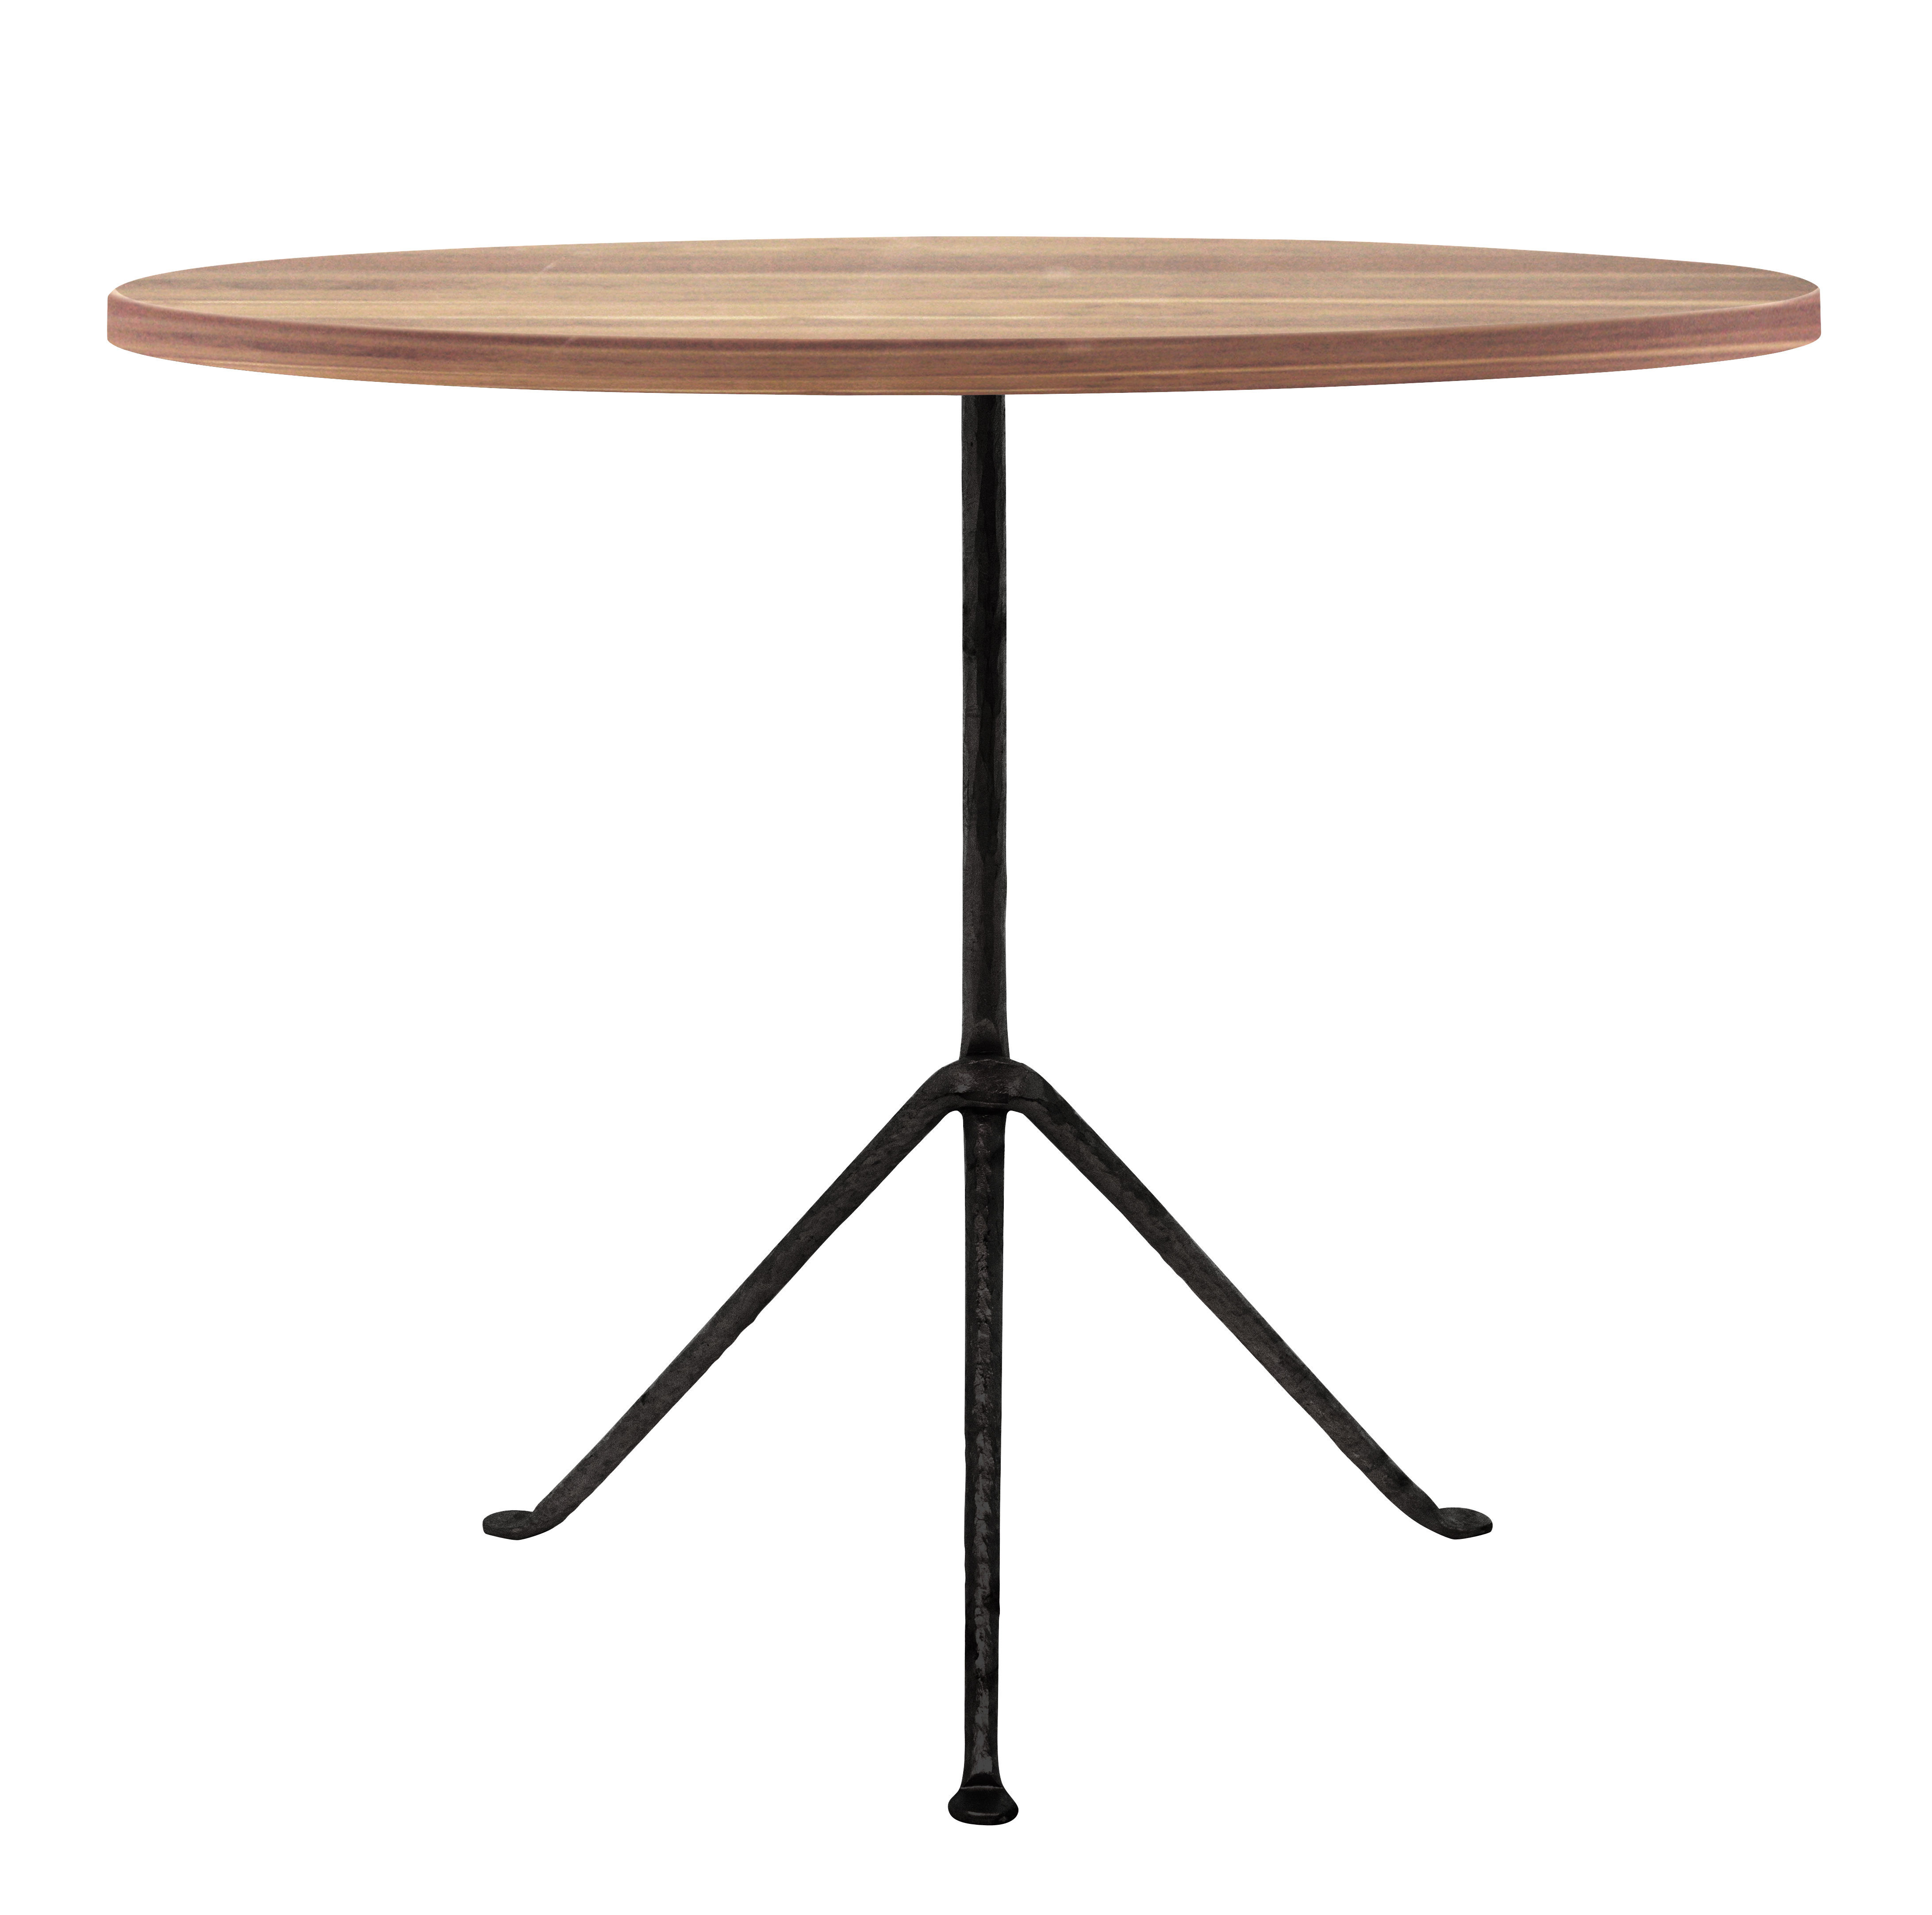 Outdoor - Garden Tables - Officina Outdoor Round table - / Ø 80 cm - Wood by Magis - Dark ash / Black legs - Heat treated ash, Varnished wrought iron